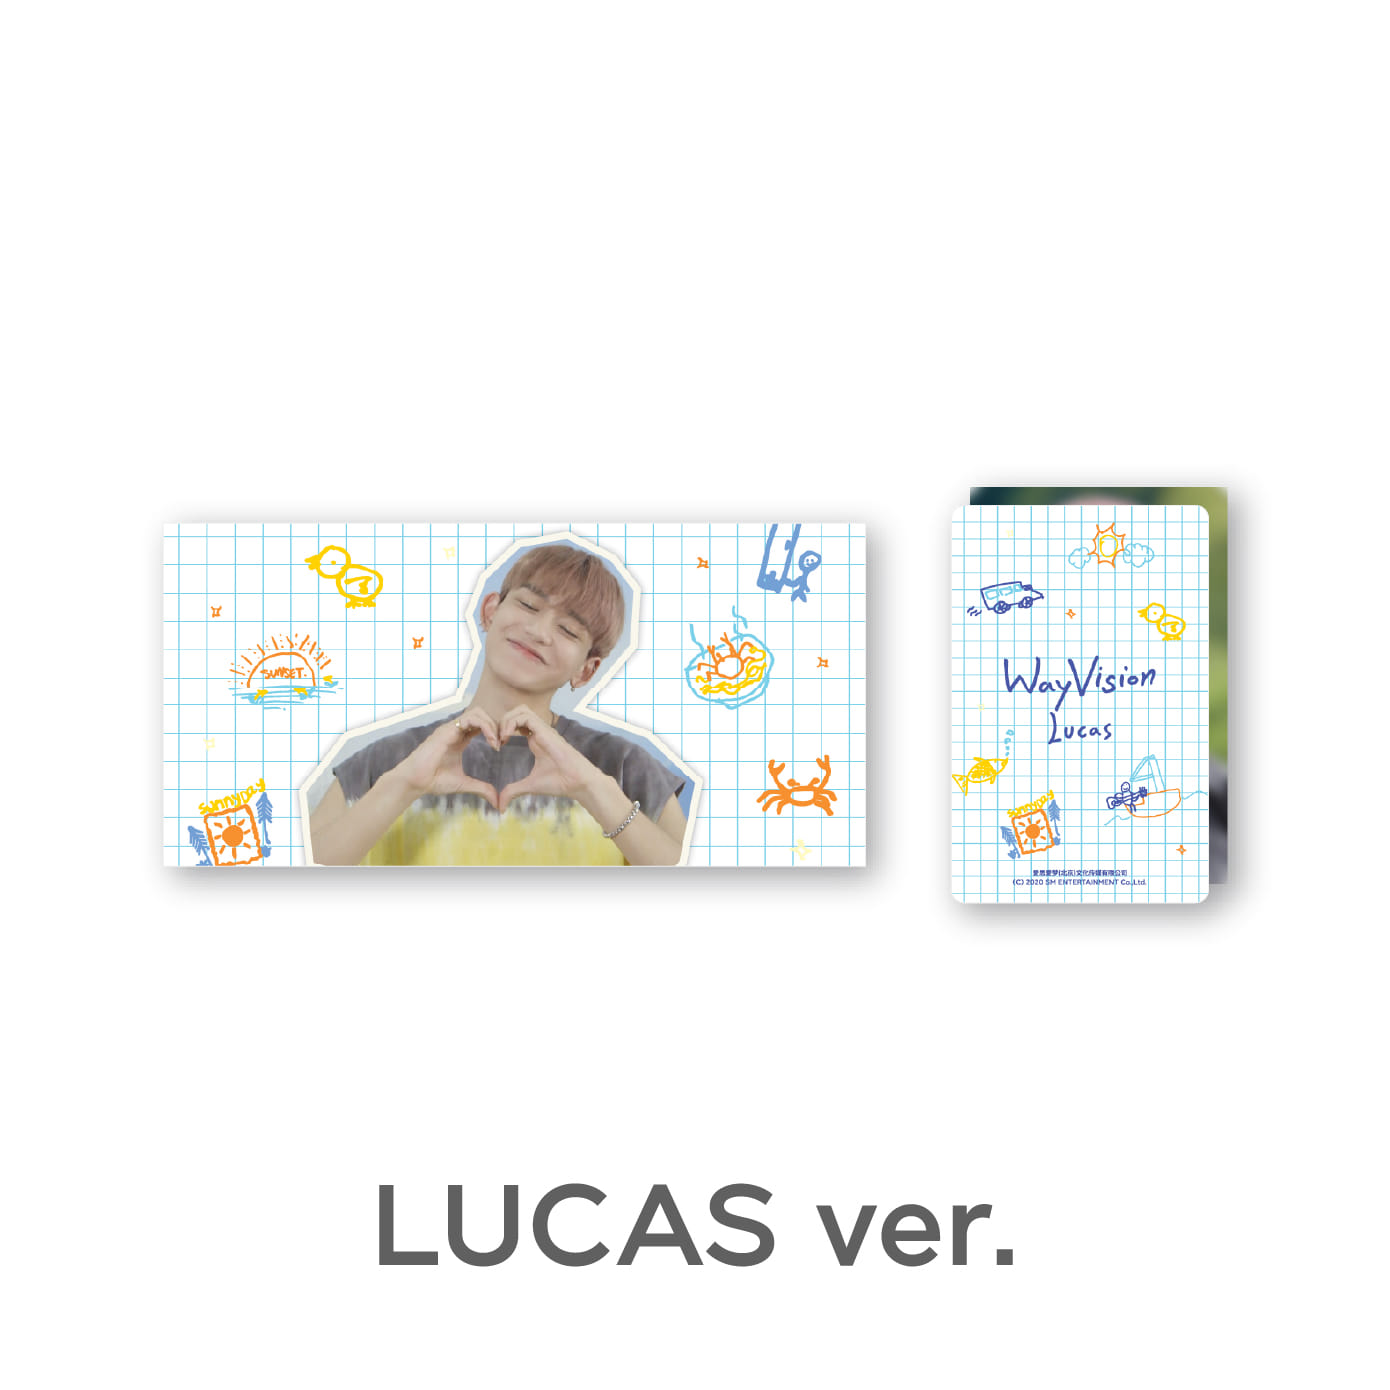 [PRE-ORDER] [WayVision] WayV_LUCAS_Flipbook + Photo card SET케이팝스토어(kpop store)